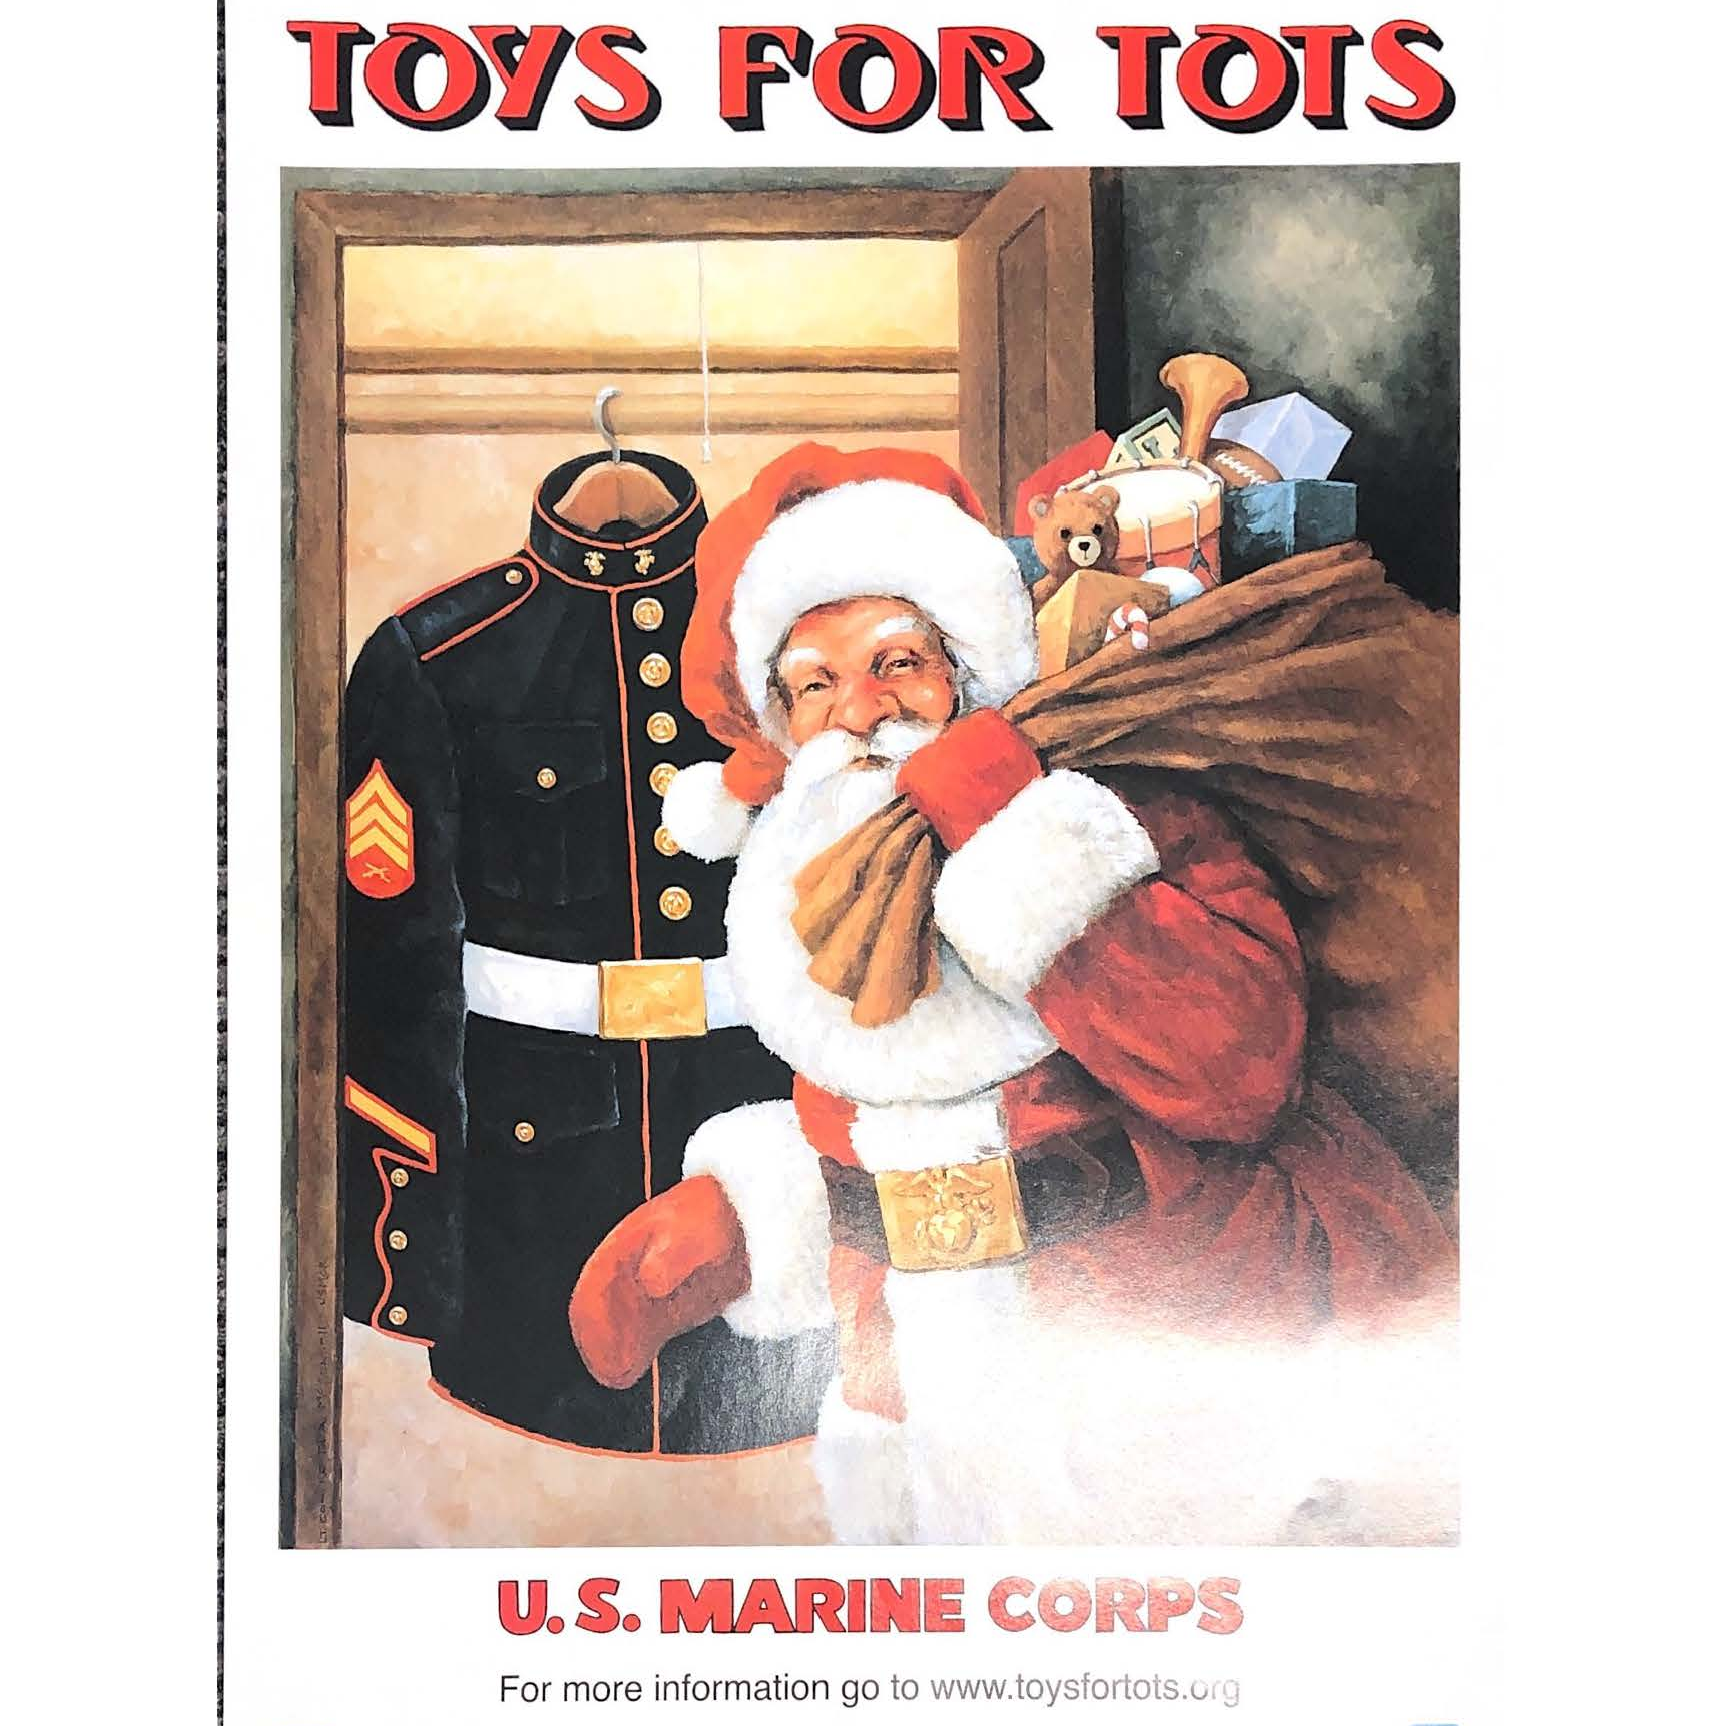 Image of Toys for Tots